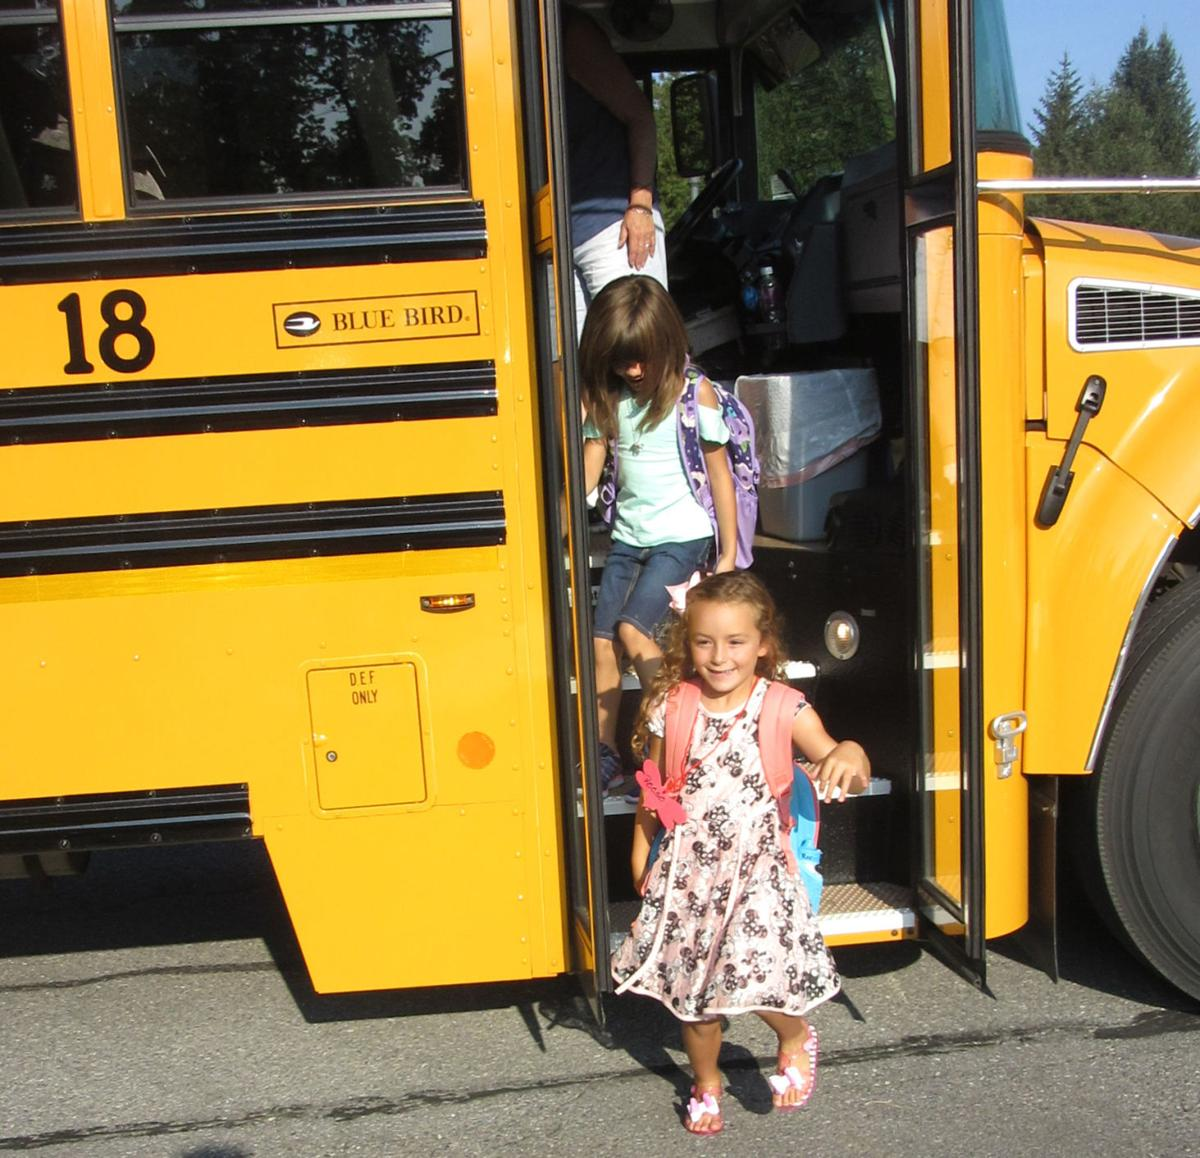 All smiles on first day of school